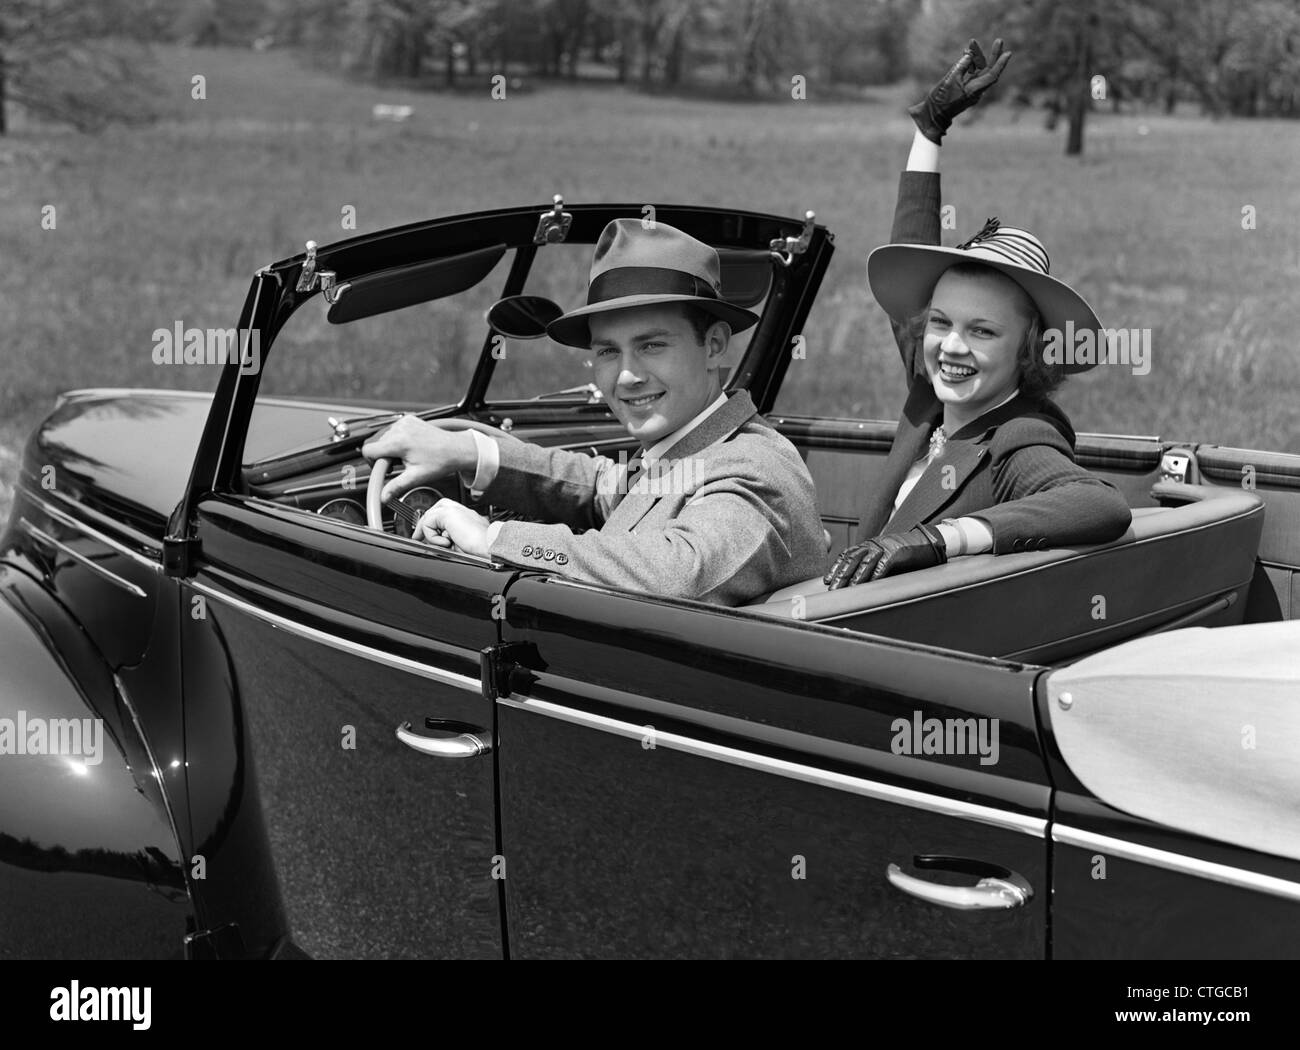 Two Mature Women In Convertible Car High Resolution Stock Photography And Images Alamy